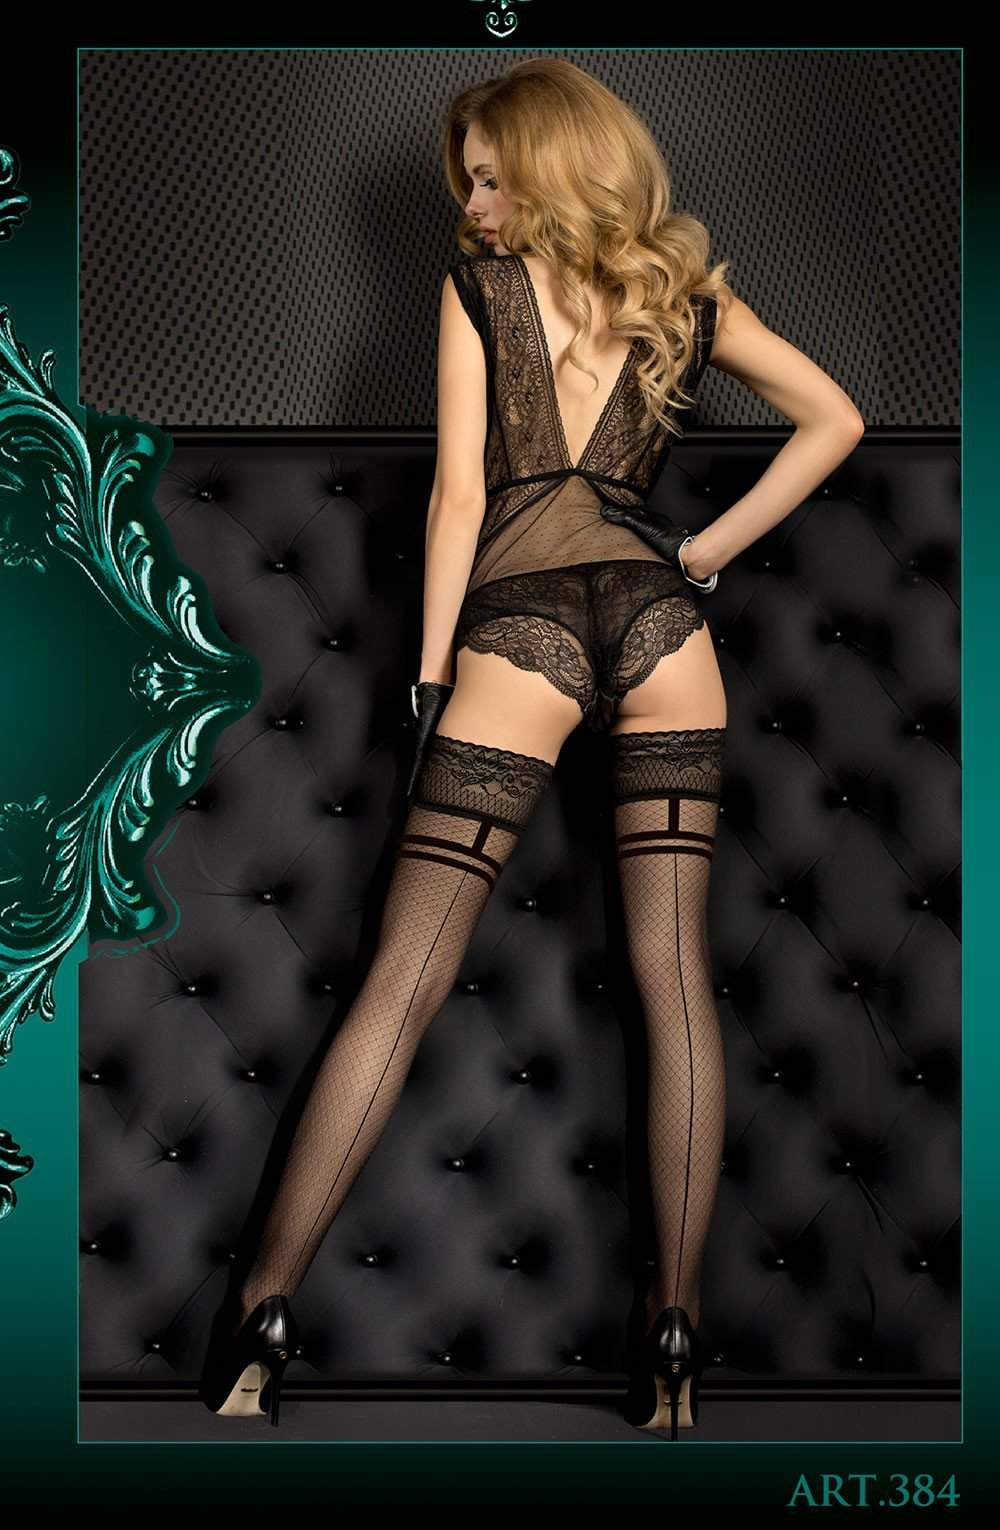 Ballerina 384 Hold Ups Nero (Black) - Ballerina - Katys Boutique Lingerie USA